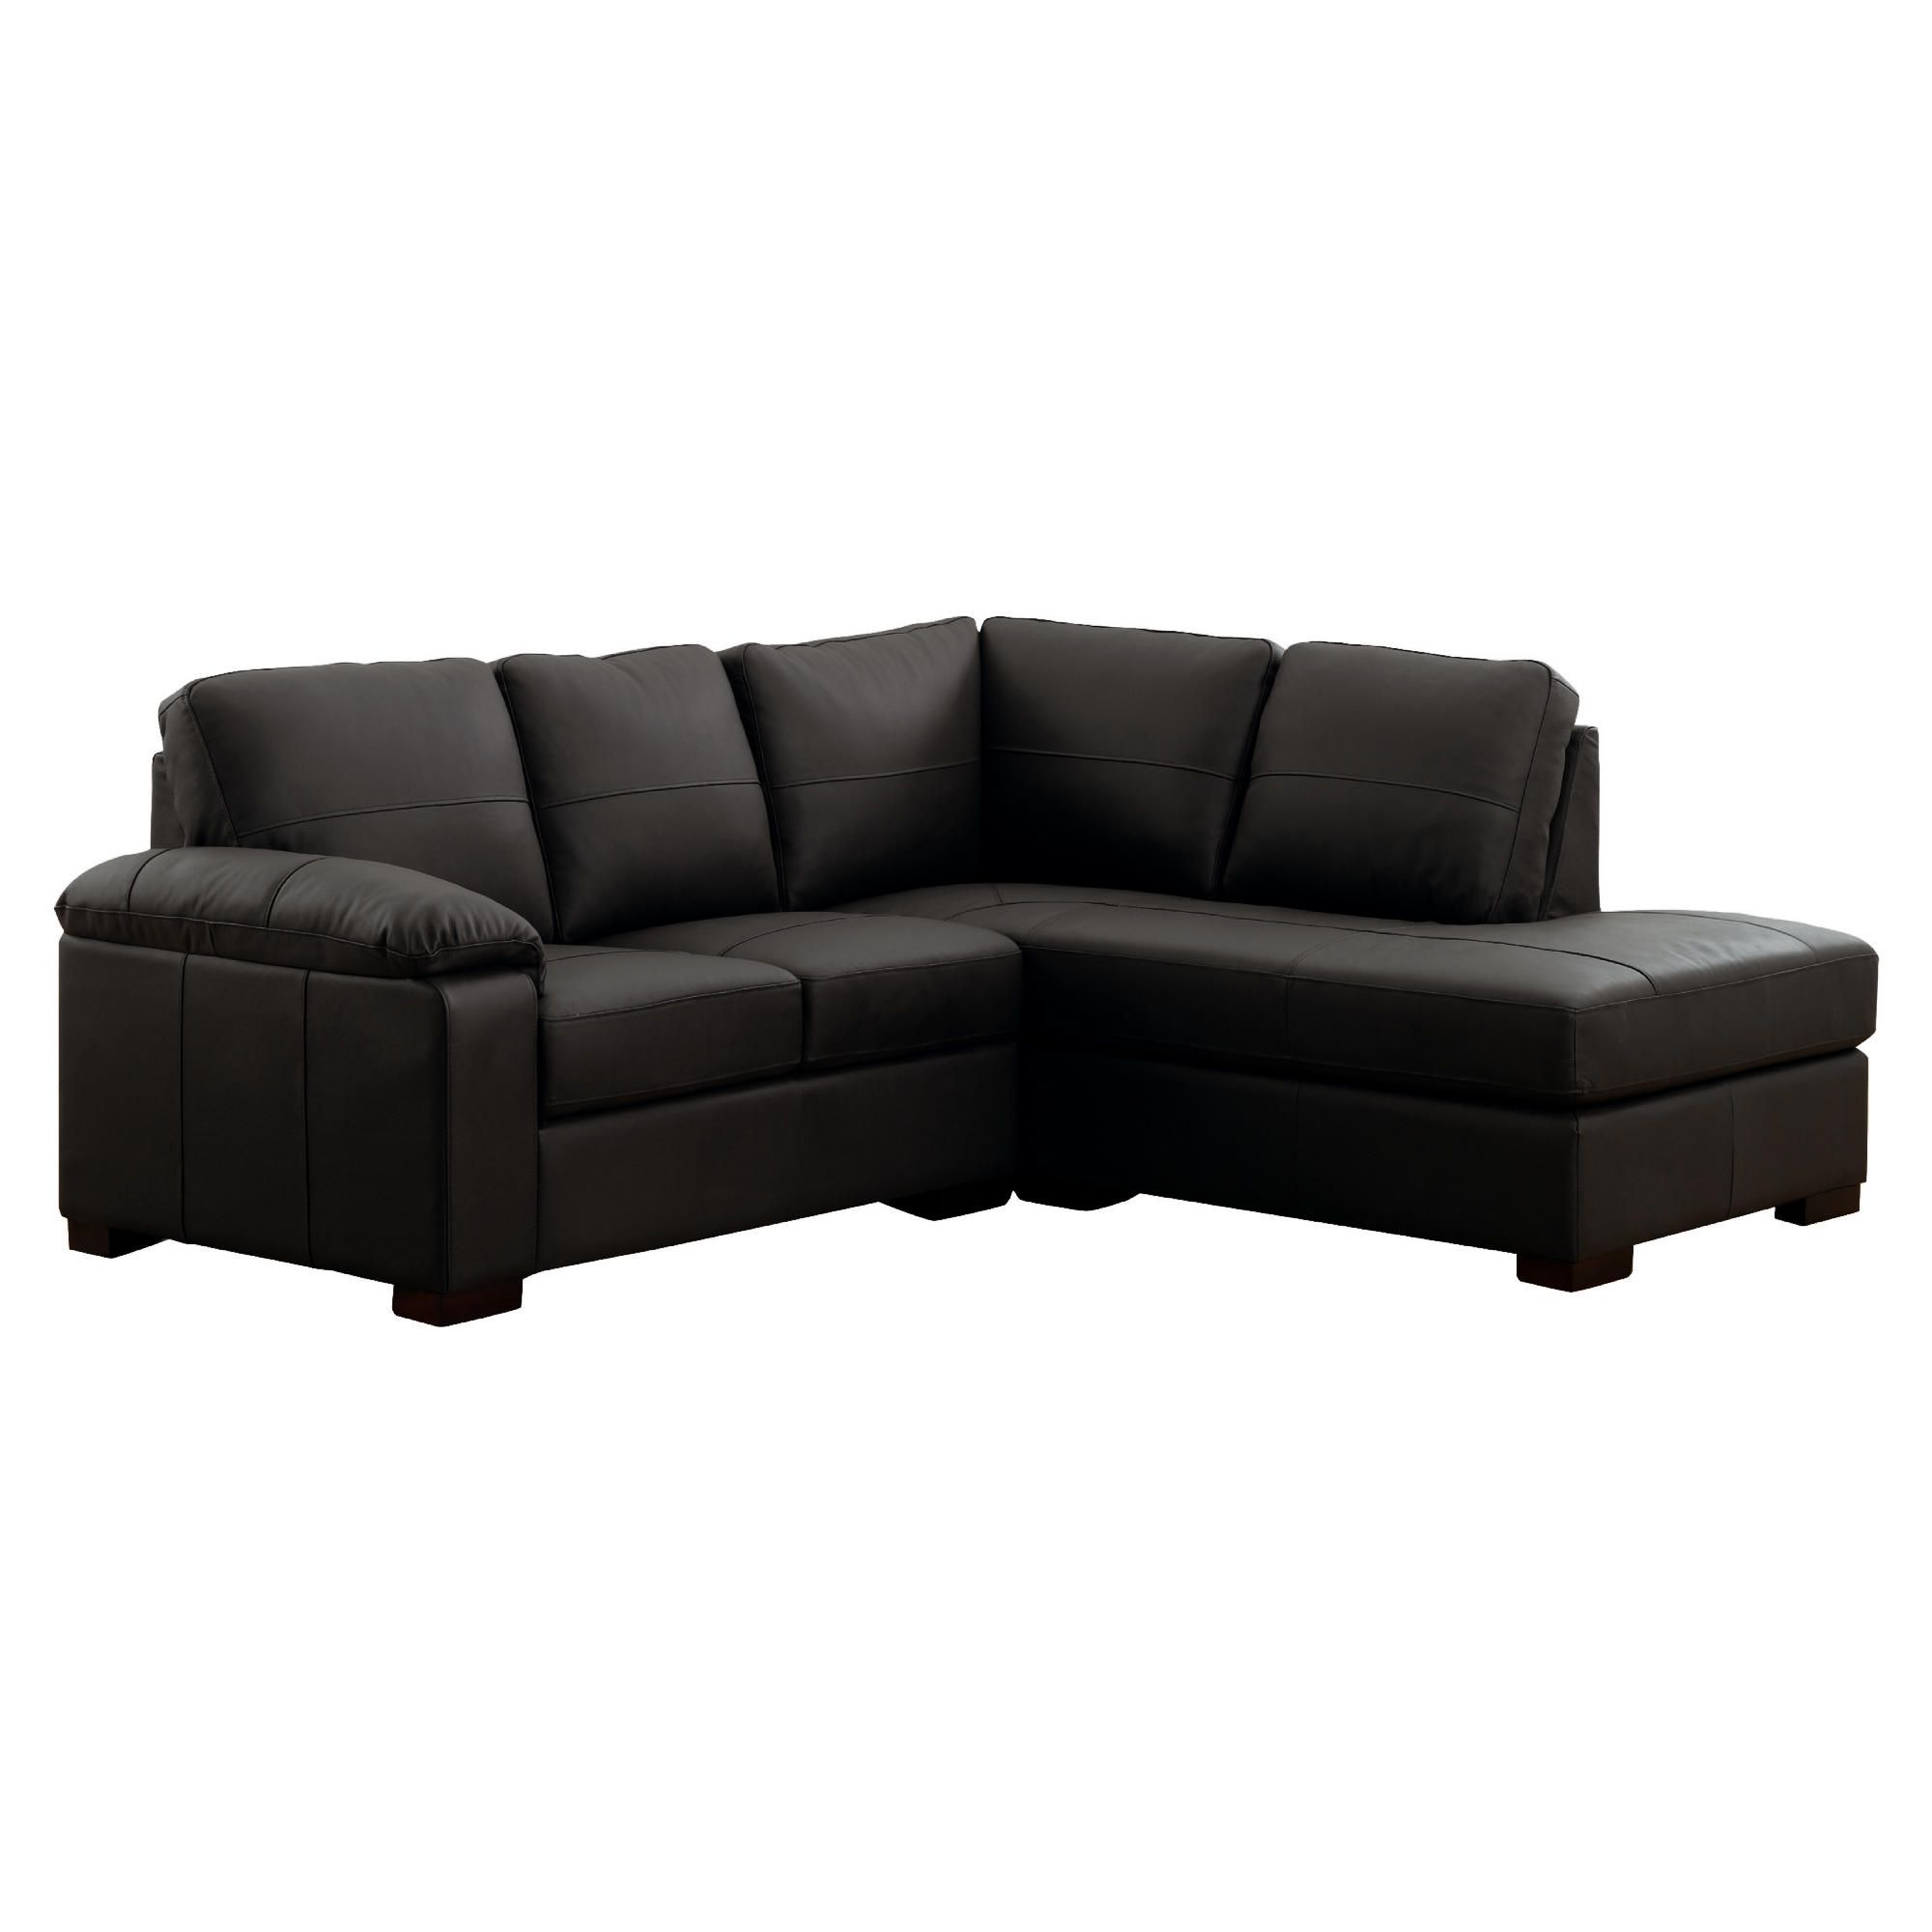 Ashmore Leather Corner Sofa, Black Right Hand Facing at Tesco Direct